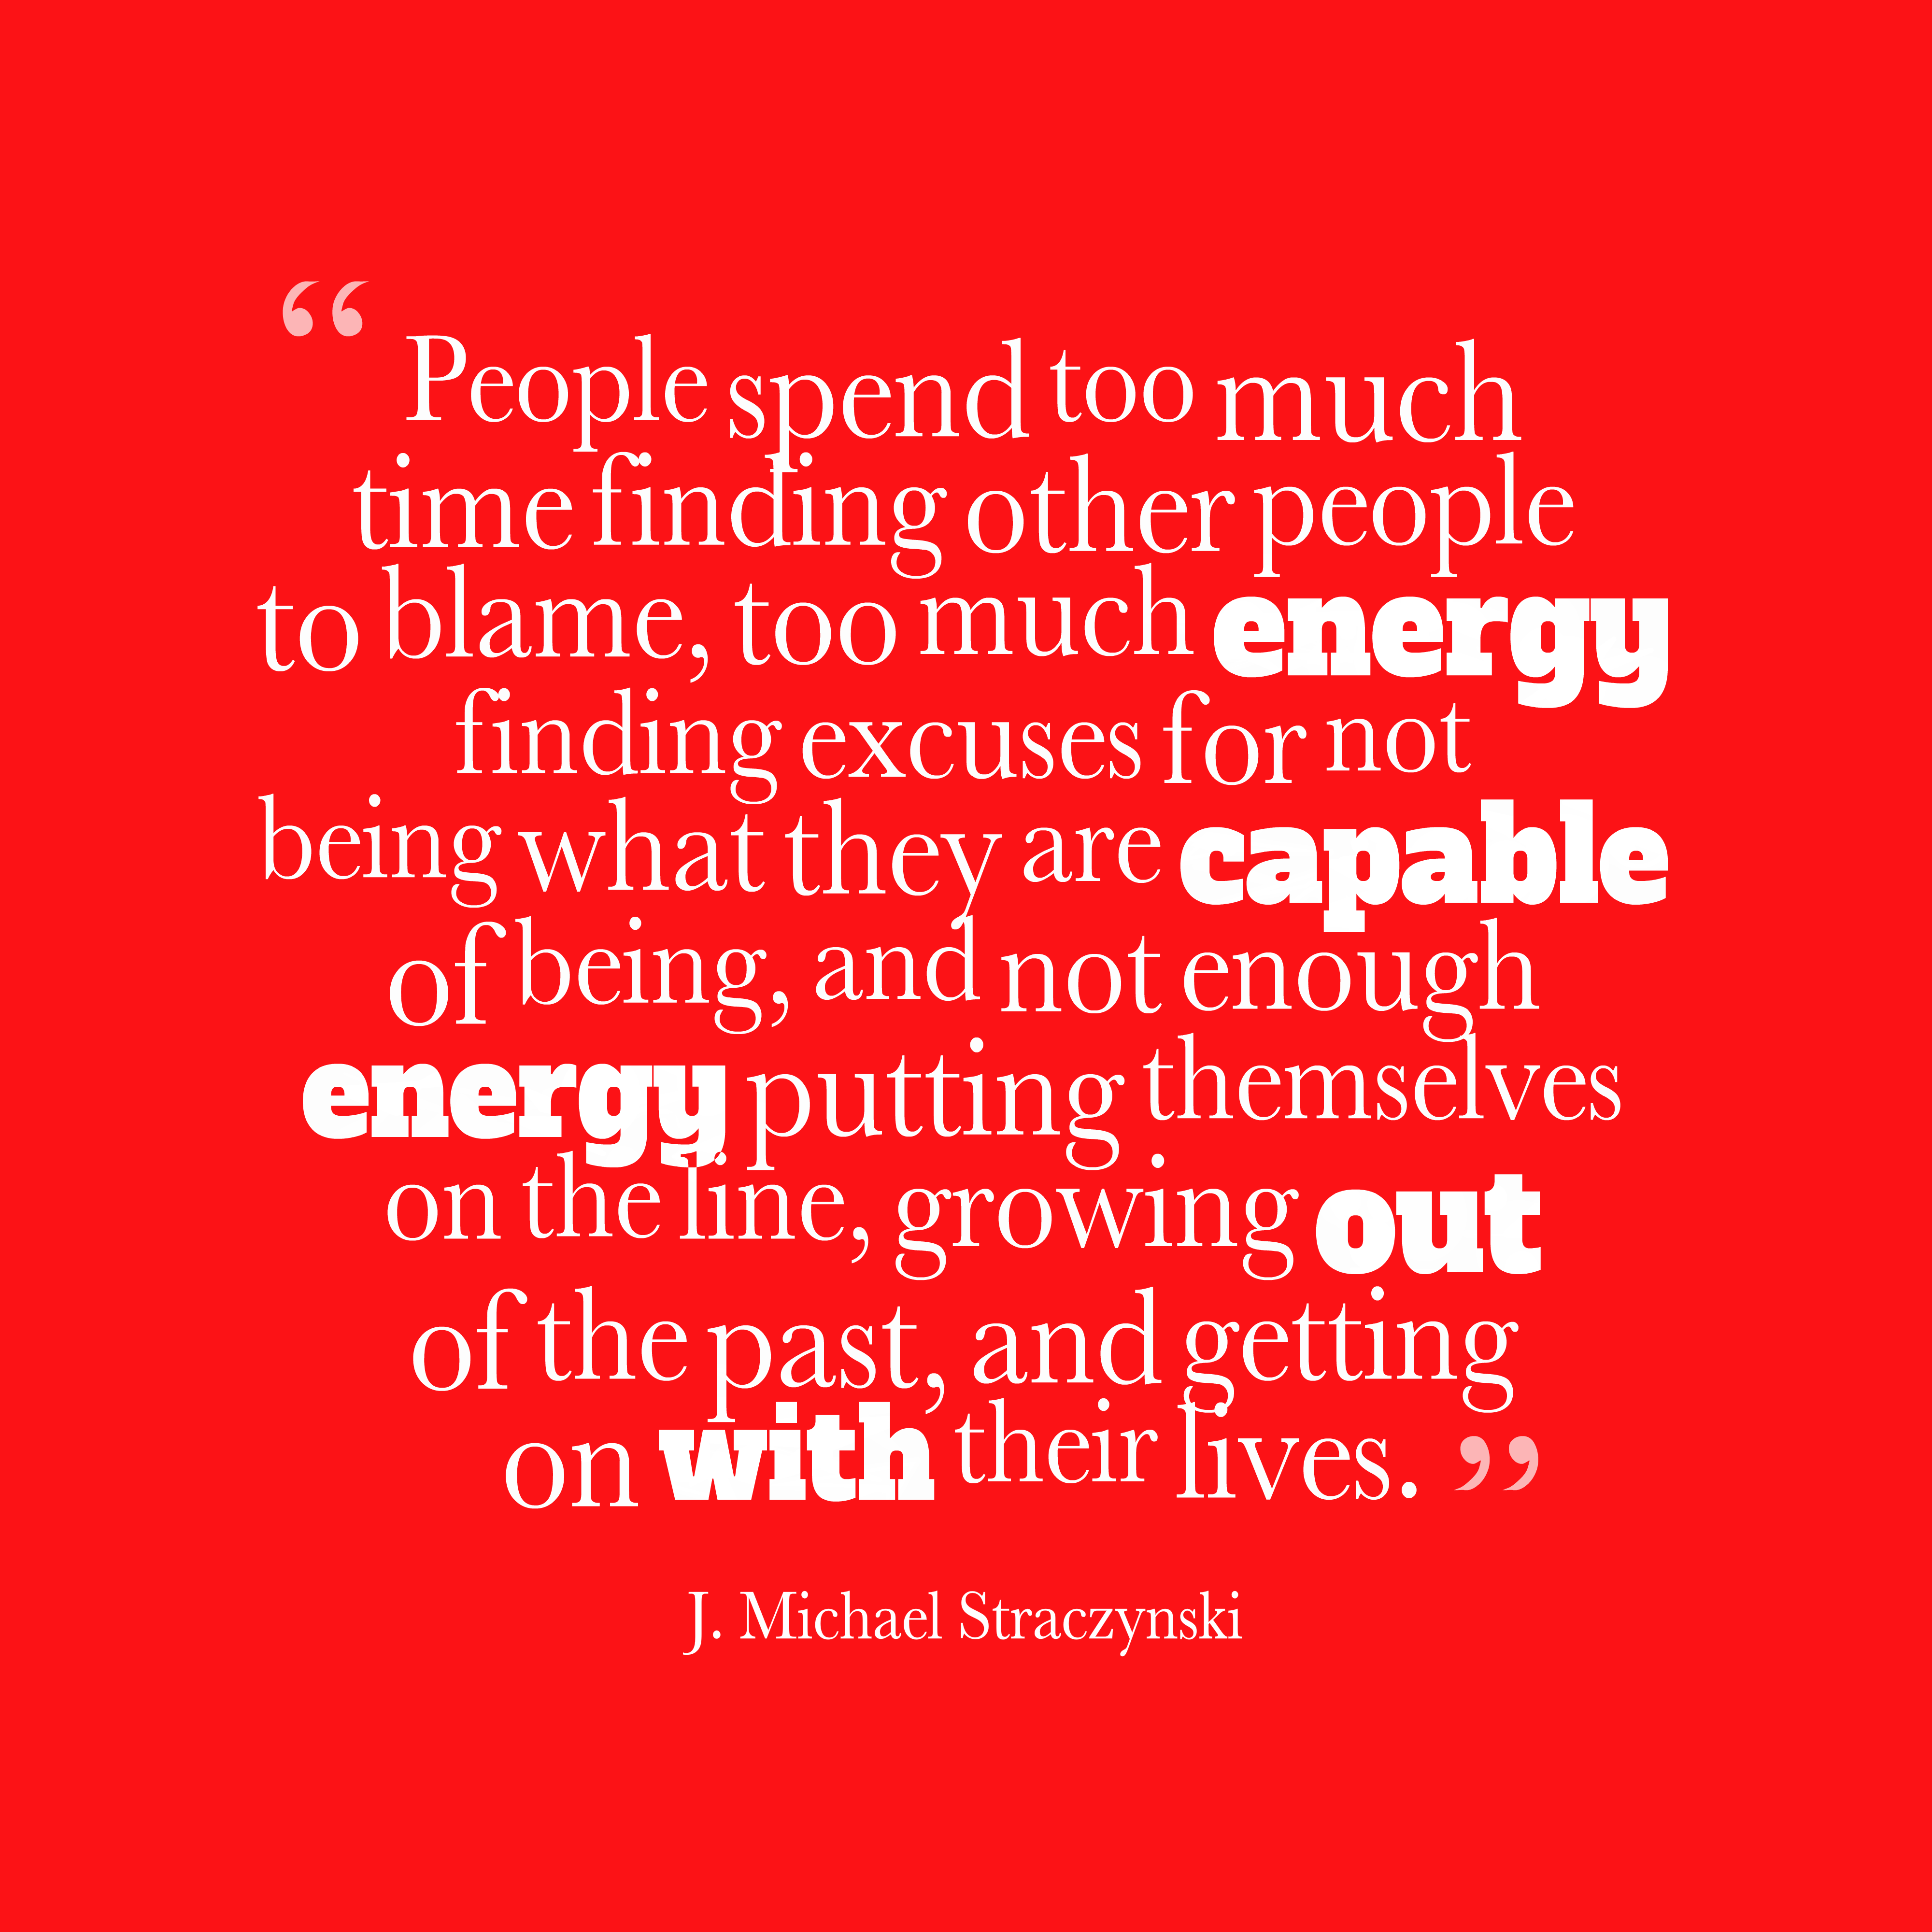 Quotes image of People spend too much time finding other people to blame, too much energy finding excuses for not being what they are capable of being, and not enough energy putting themselves on the line, growing out of the past, and getting on with their lives.